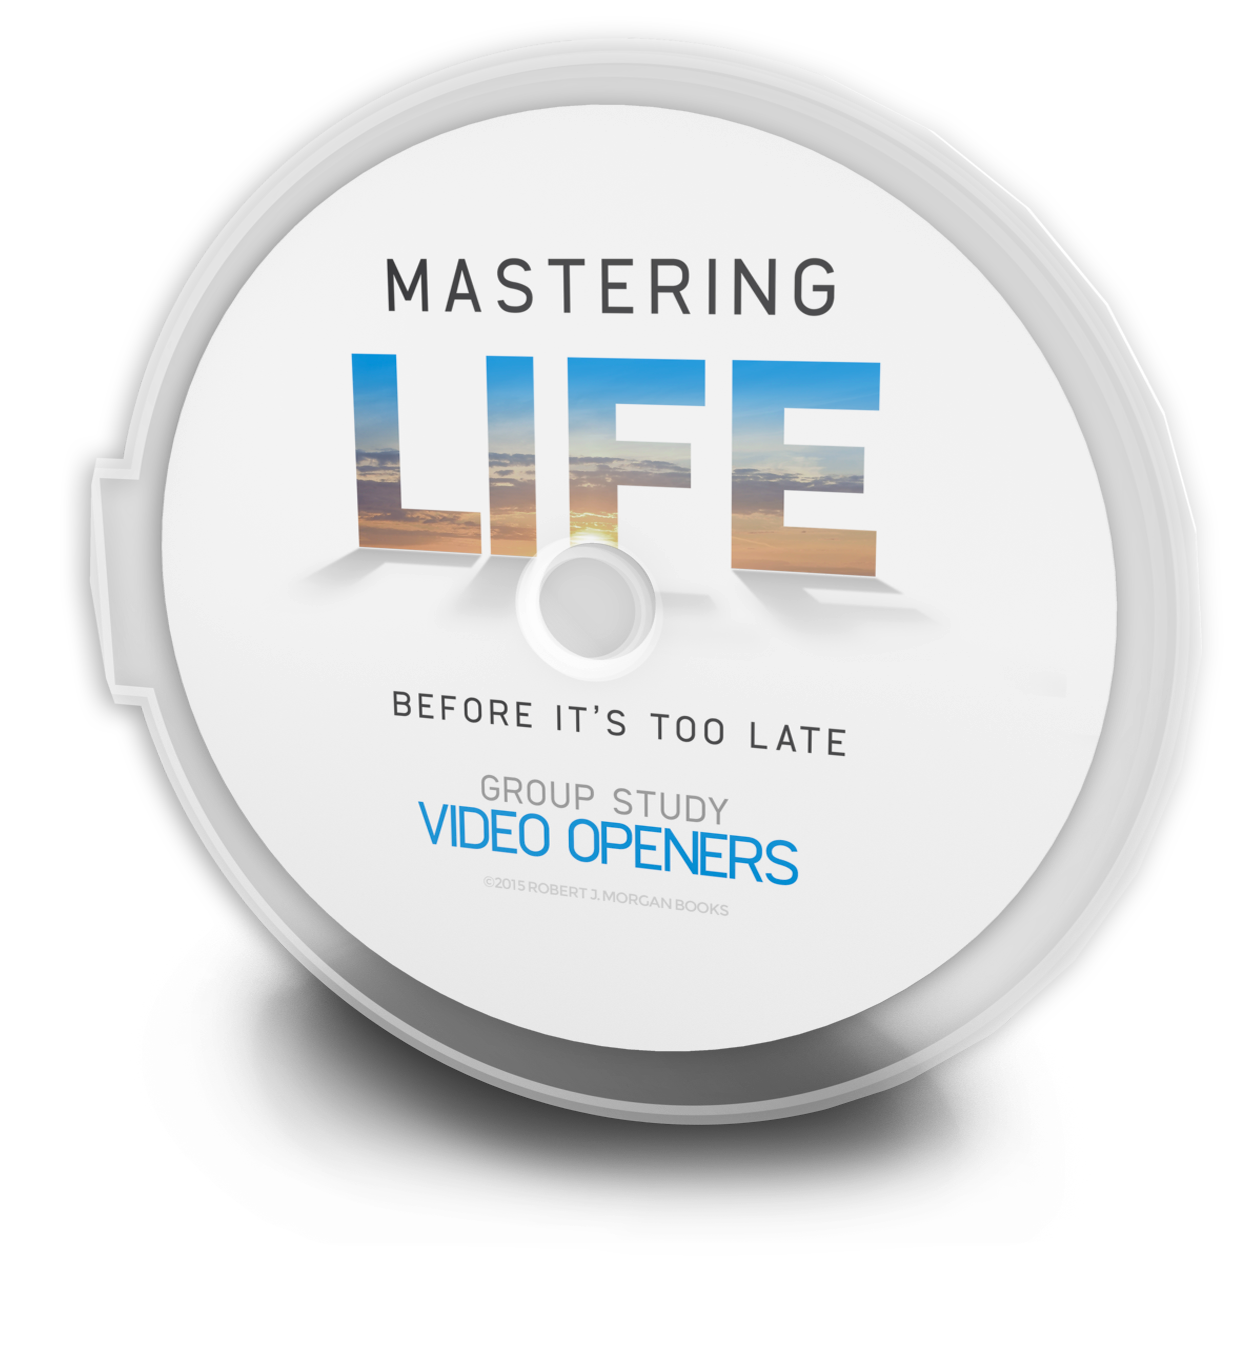 Mastering Live Group Study Video Openers